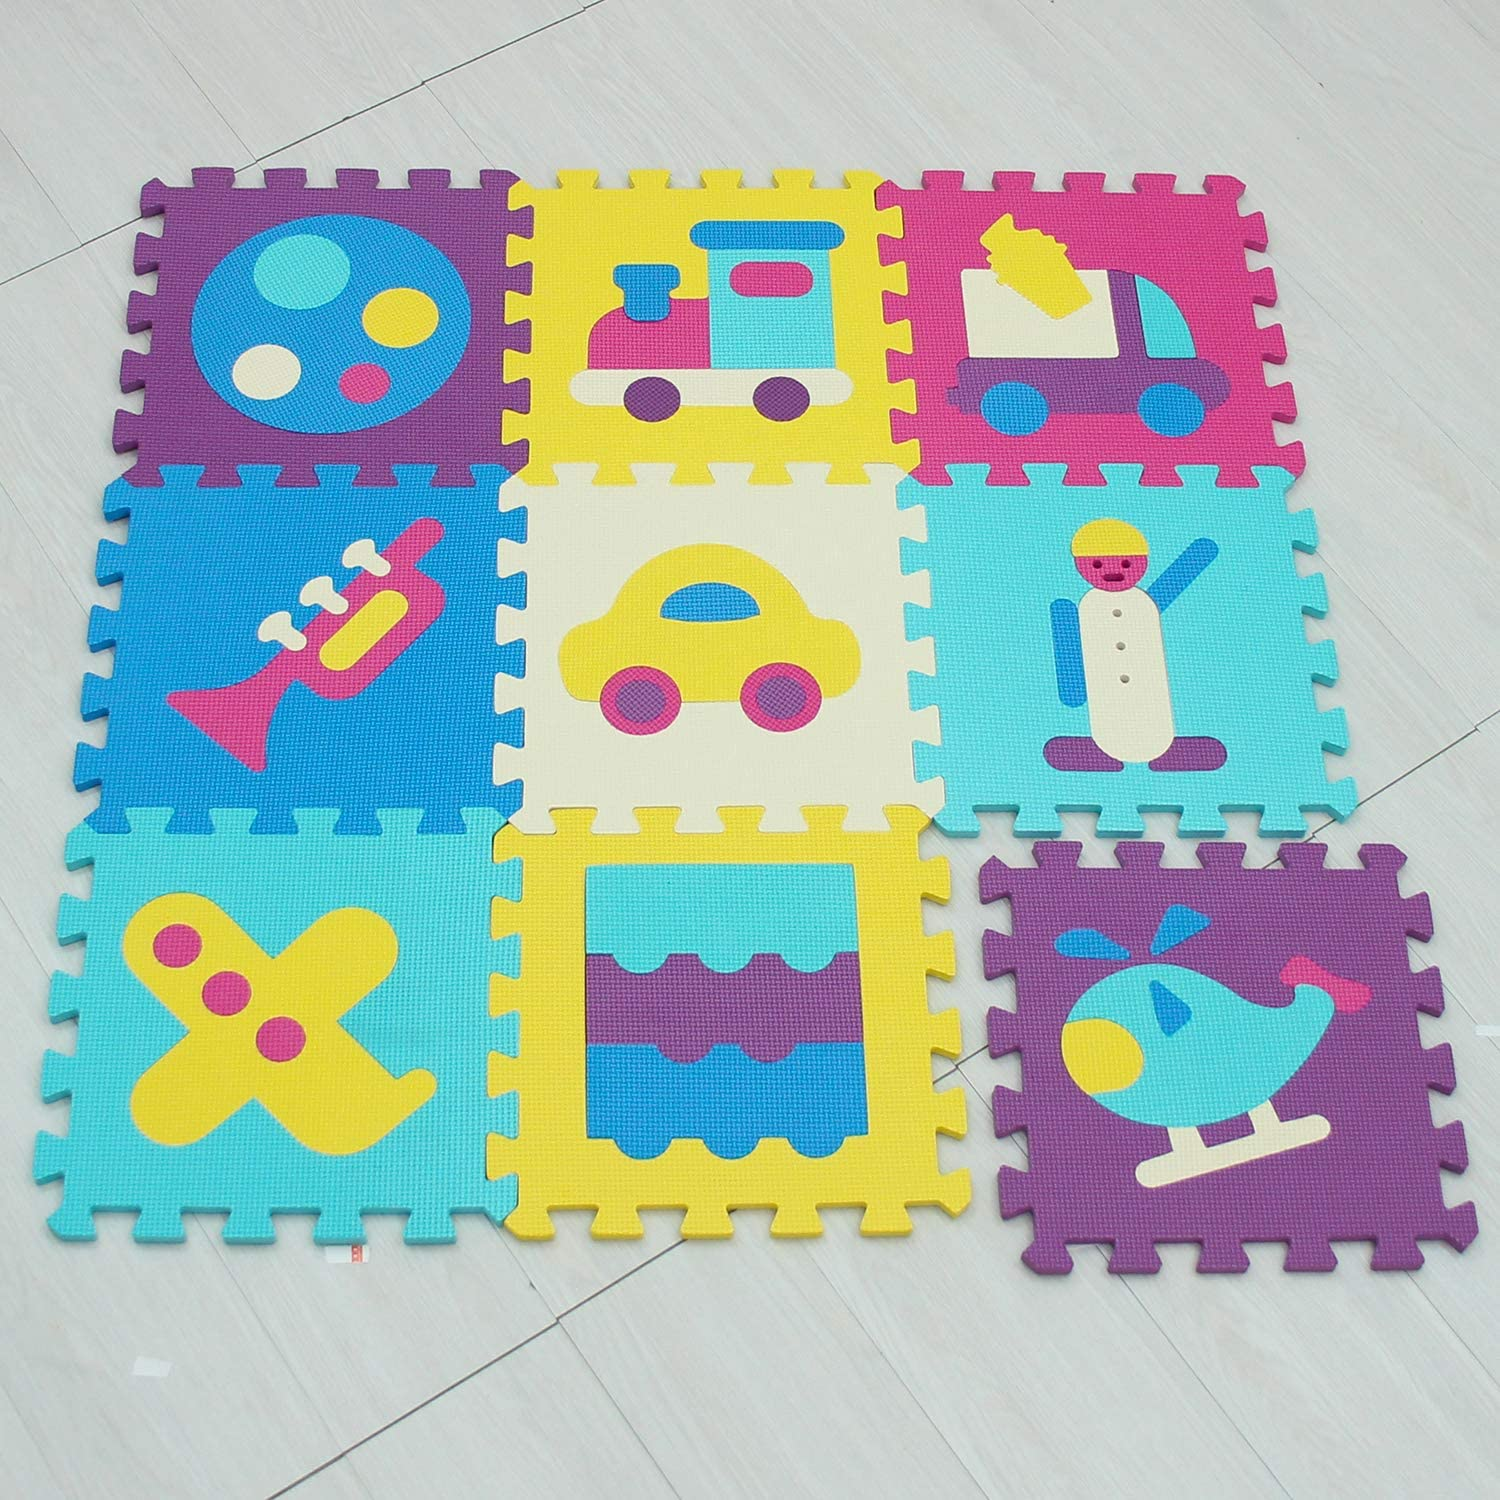 Baby Play Mats|Foam Play Mat Tiles|Jigsaw Puzzle Interlocking Floor for Children,Kids and Toddlers|Gym Exercise and Crawling EVA Saft mat MUSHEN 006